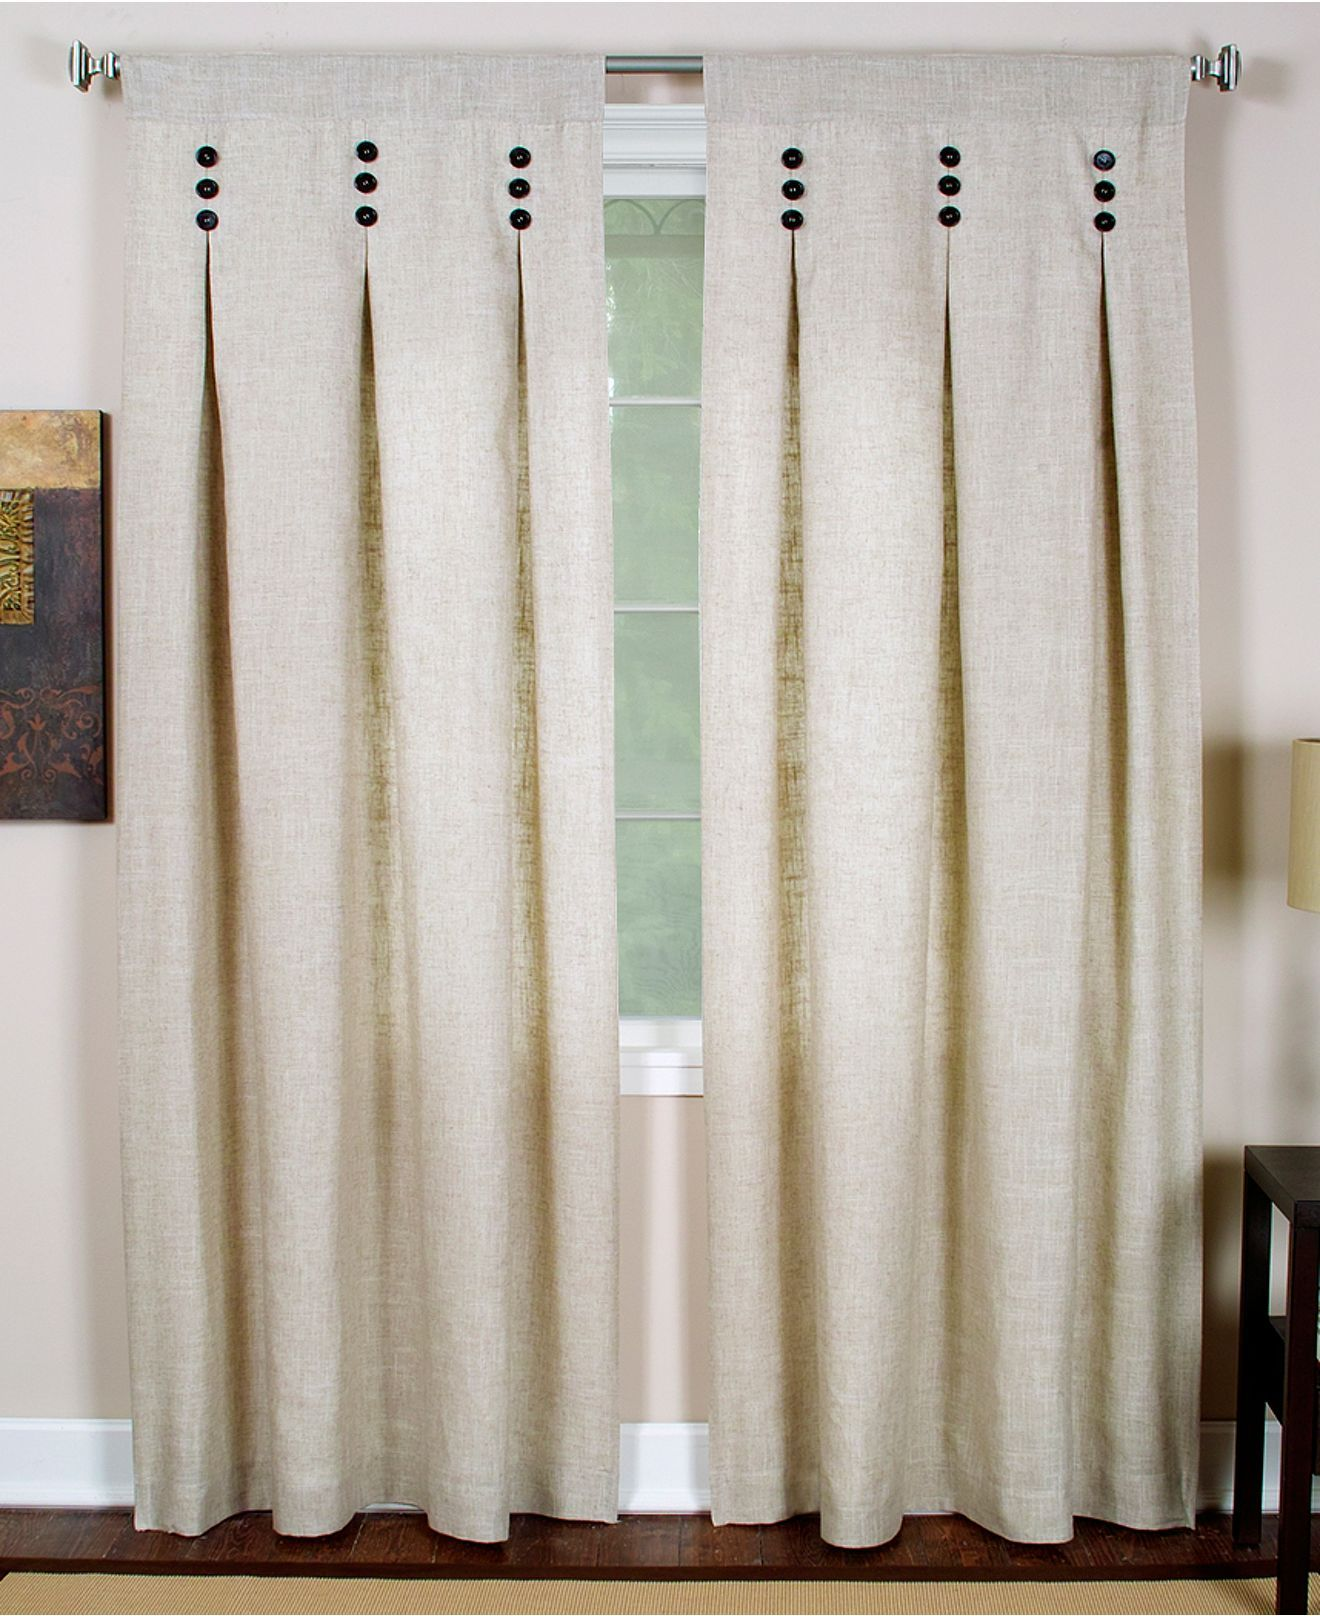 Inverted box pleat with contrast button detail curtains